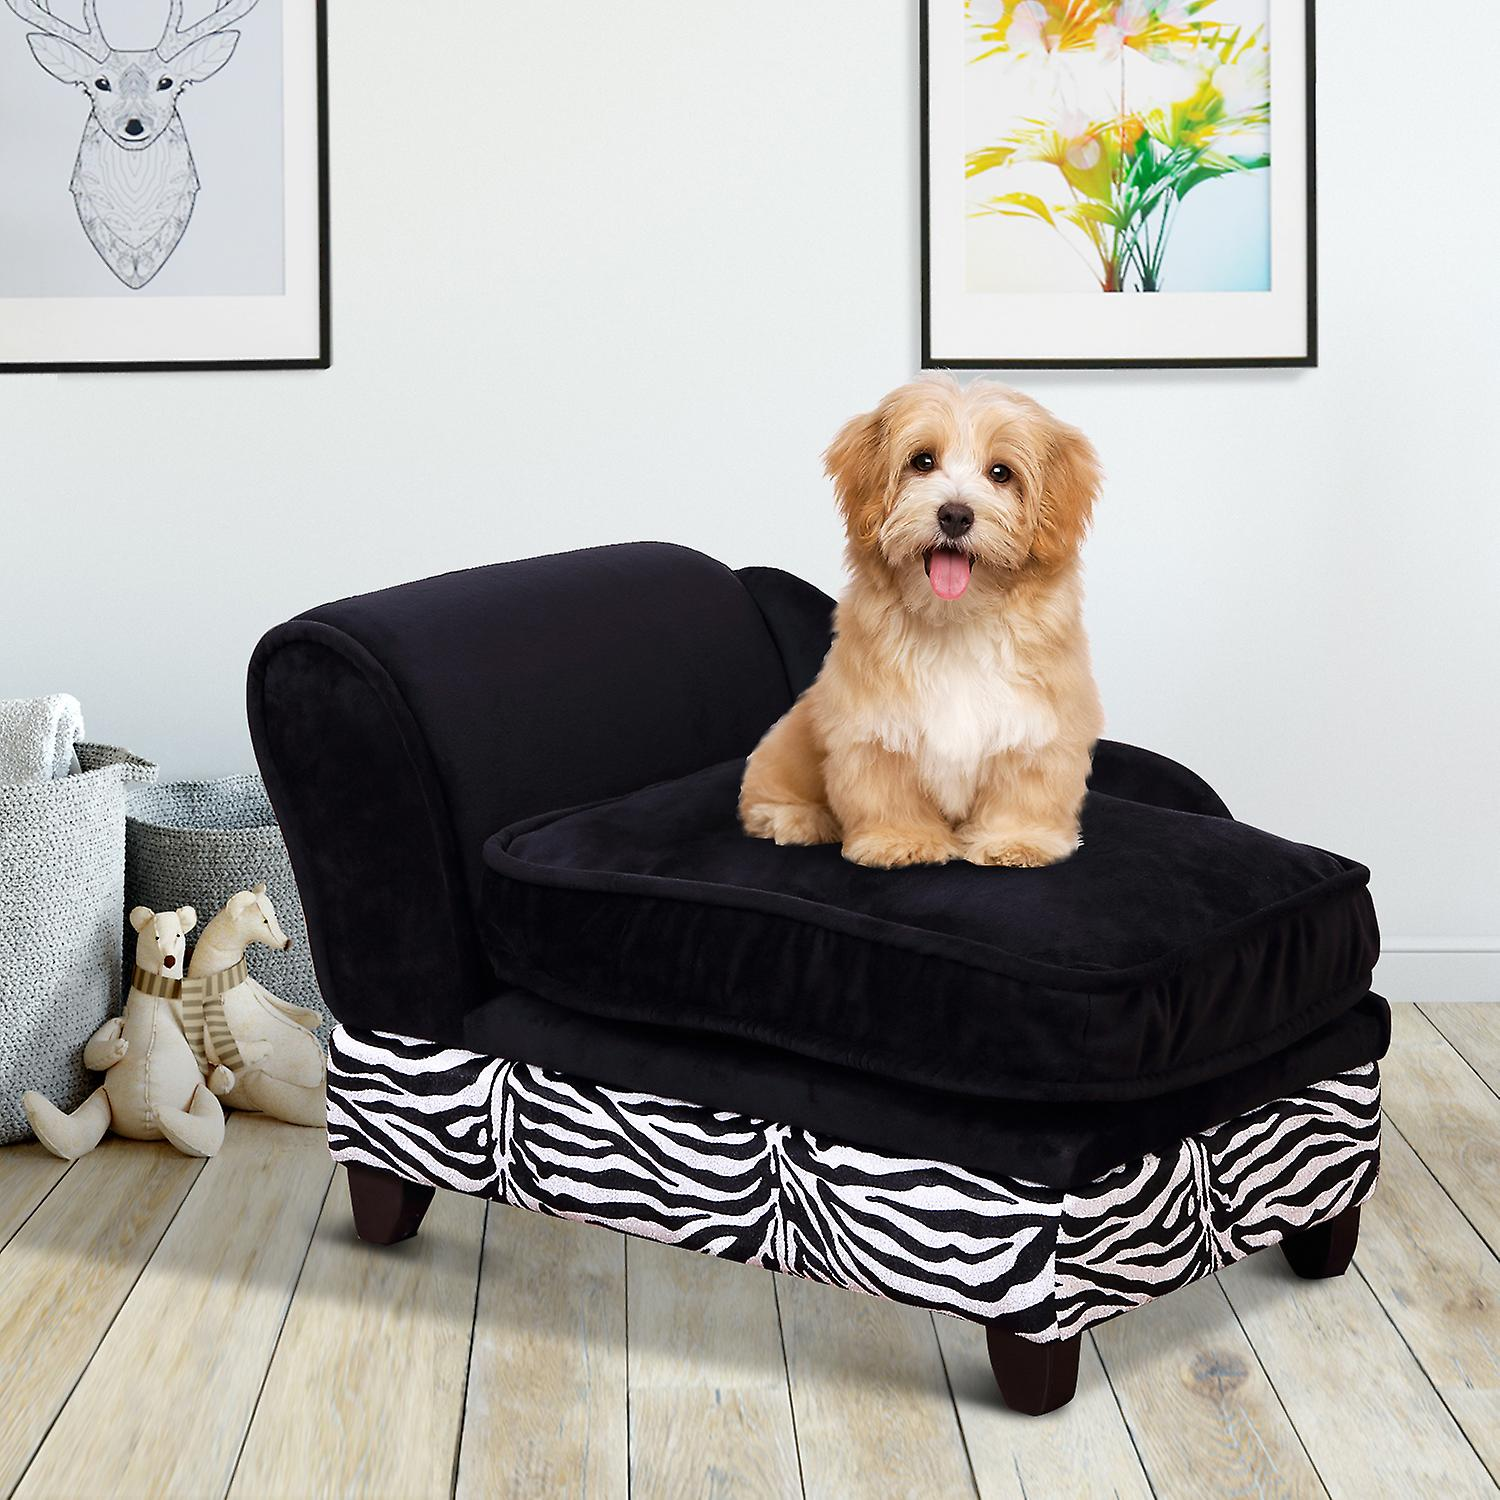 Swell Pawhut Luxury Pet Sofa Dog Bed Chaise Lounge Soft Mat Indoor Couch Zebra Stripe W Cushion Andrewgaddart Wooden Chair Designs For Living Room Andrewgaddartcom